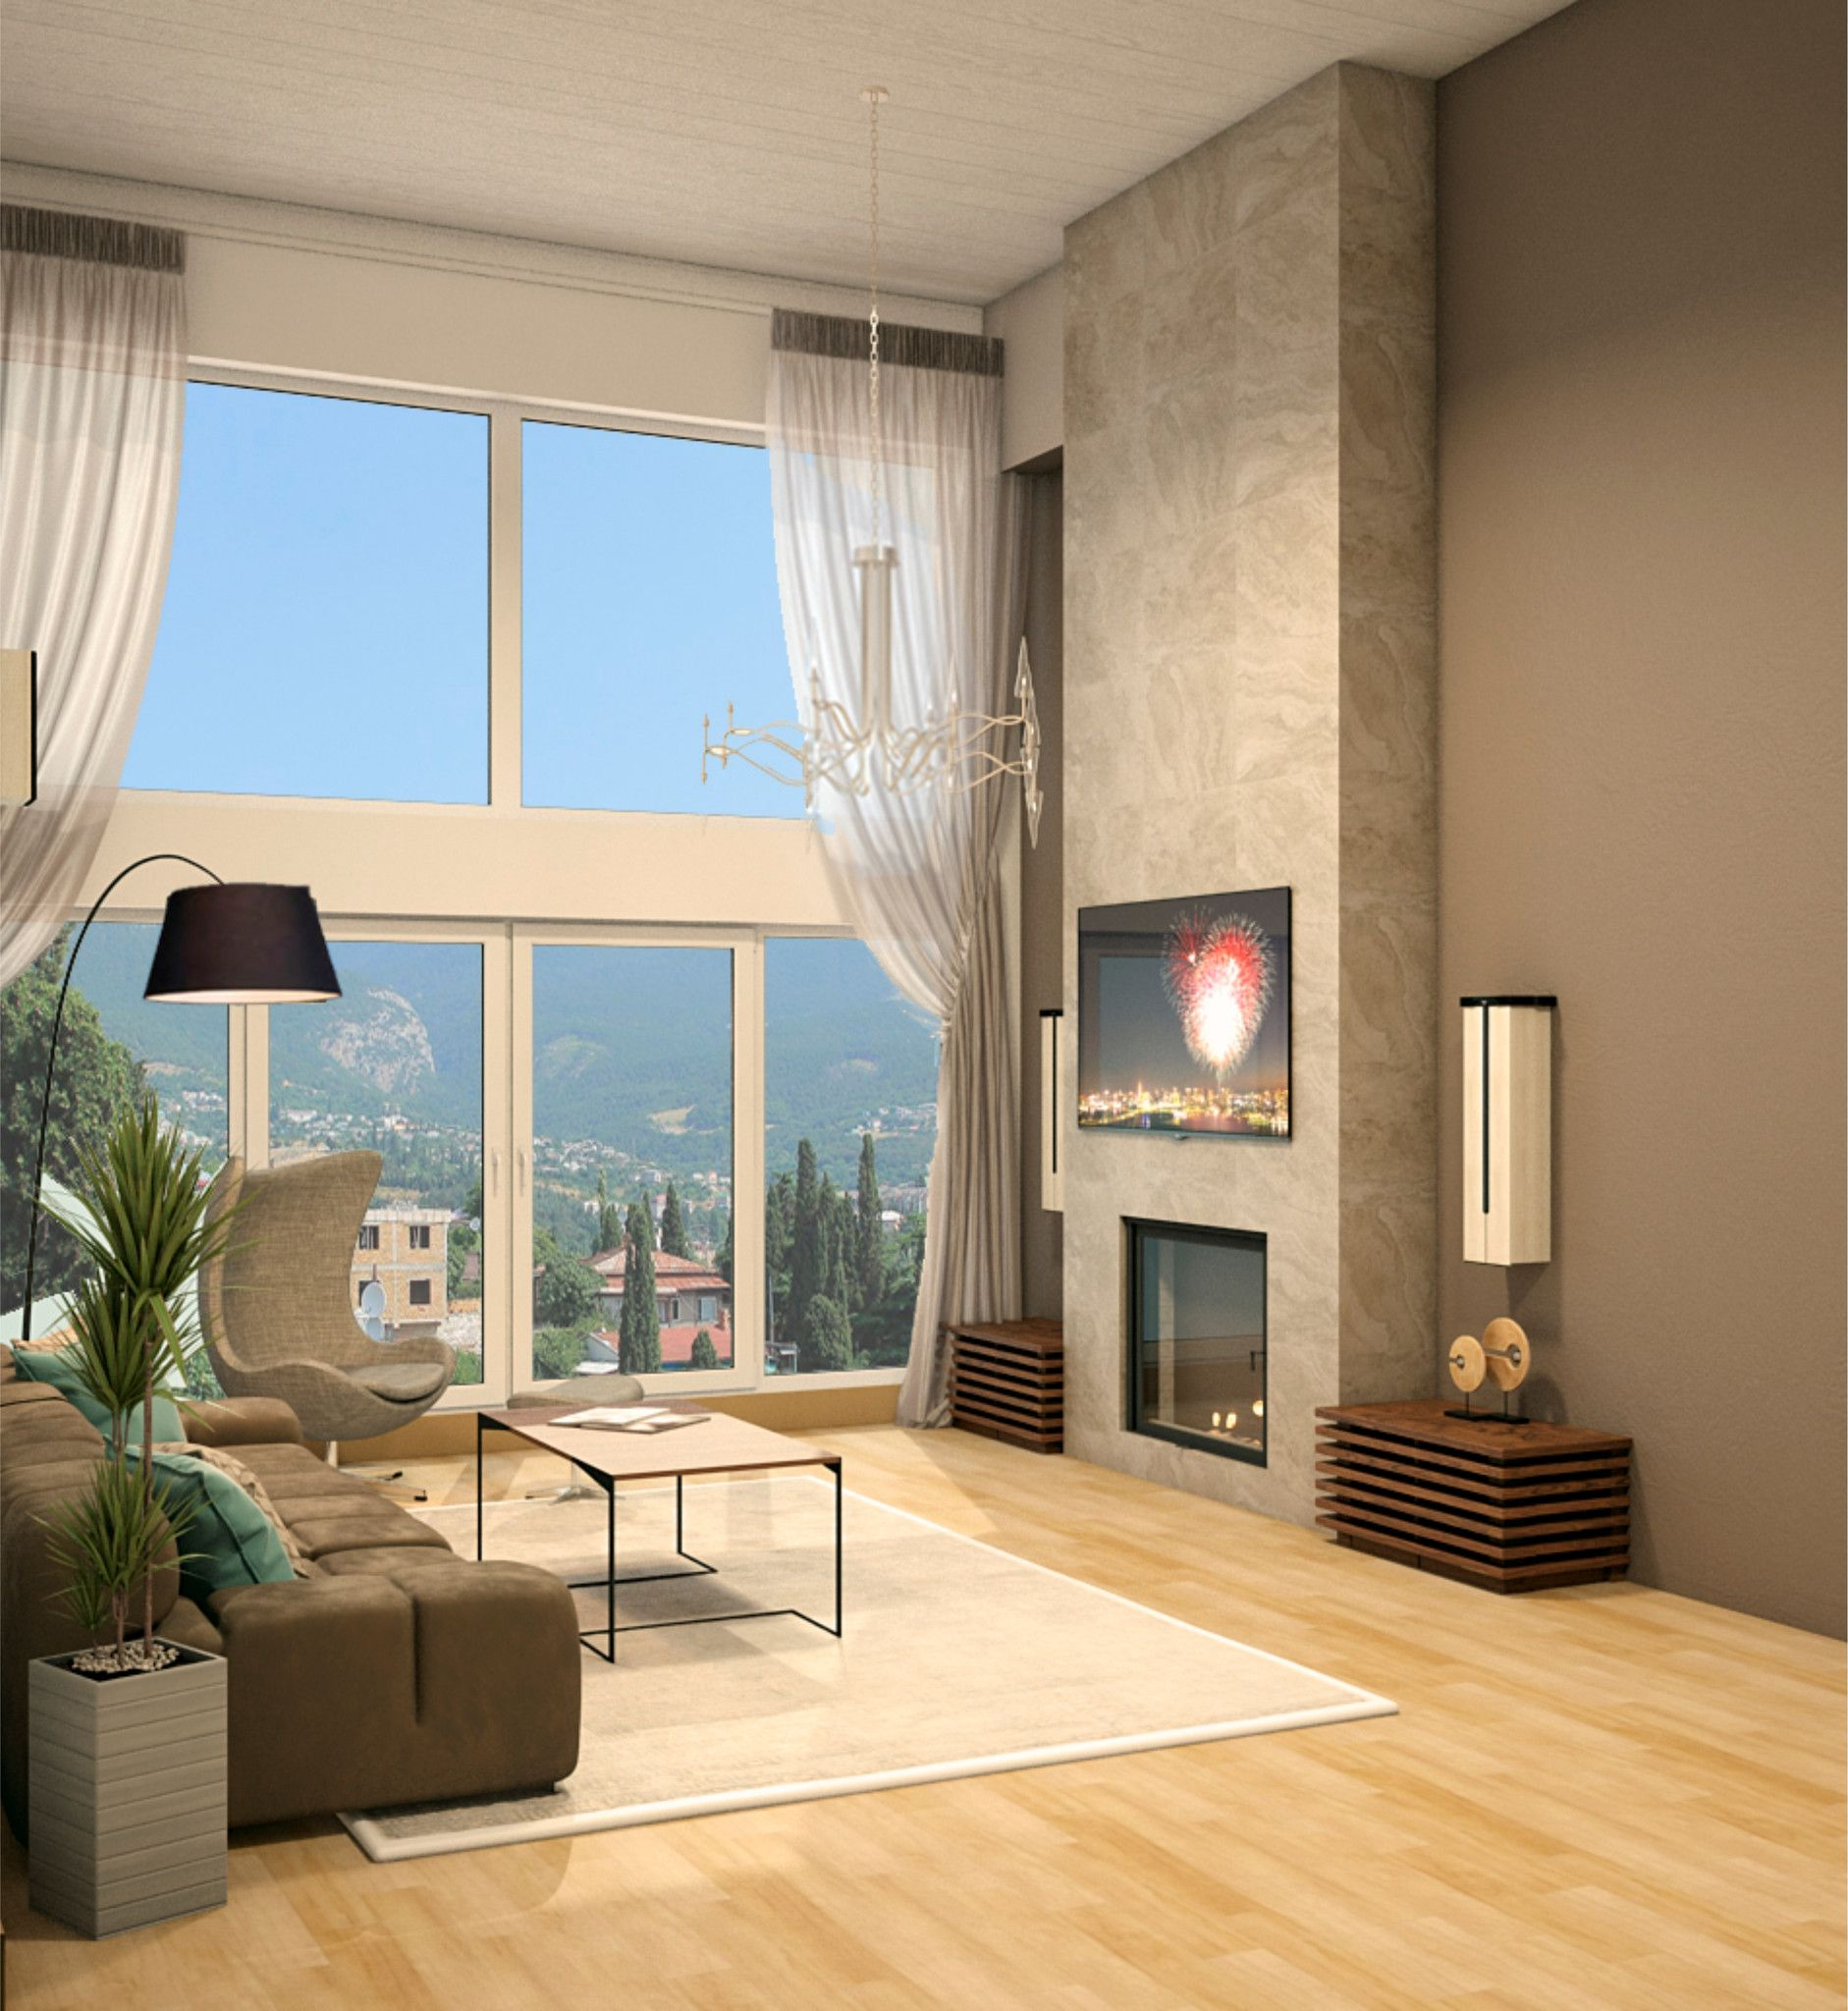 Living Room Design Online Interesting Thinking Of Shopping Emfurn But Not Sure How Your Room Will Appear Inspiration Design